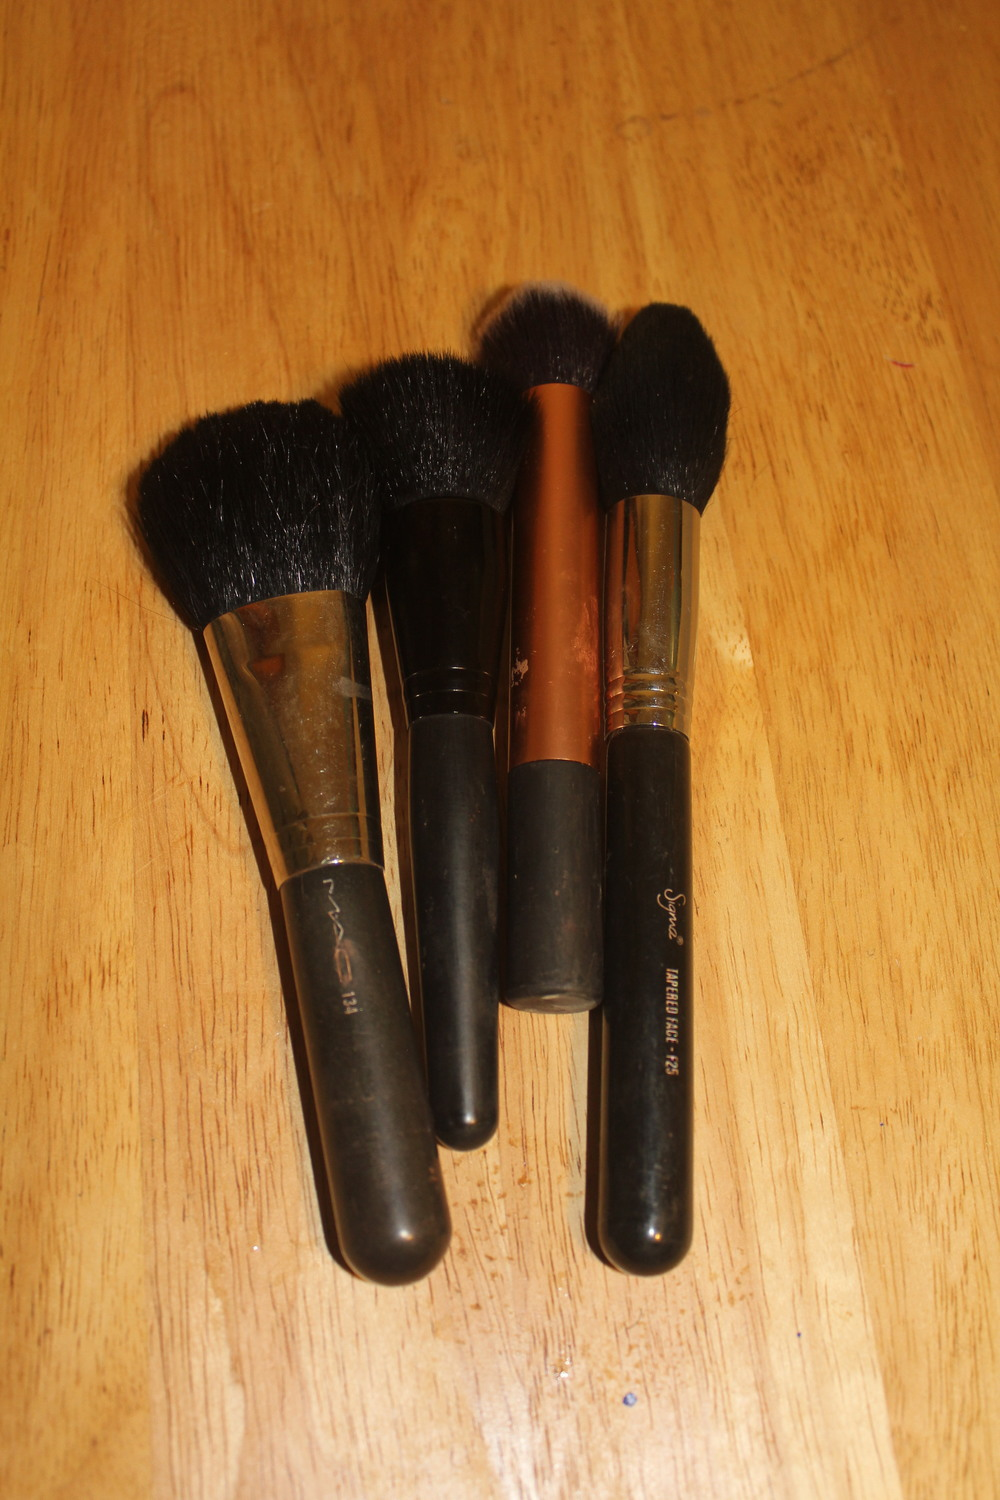 Face Brushes from MAC, SIgma and Real Techniques